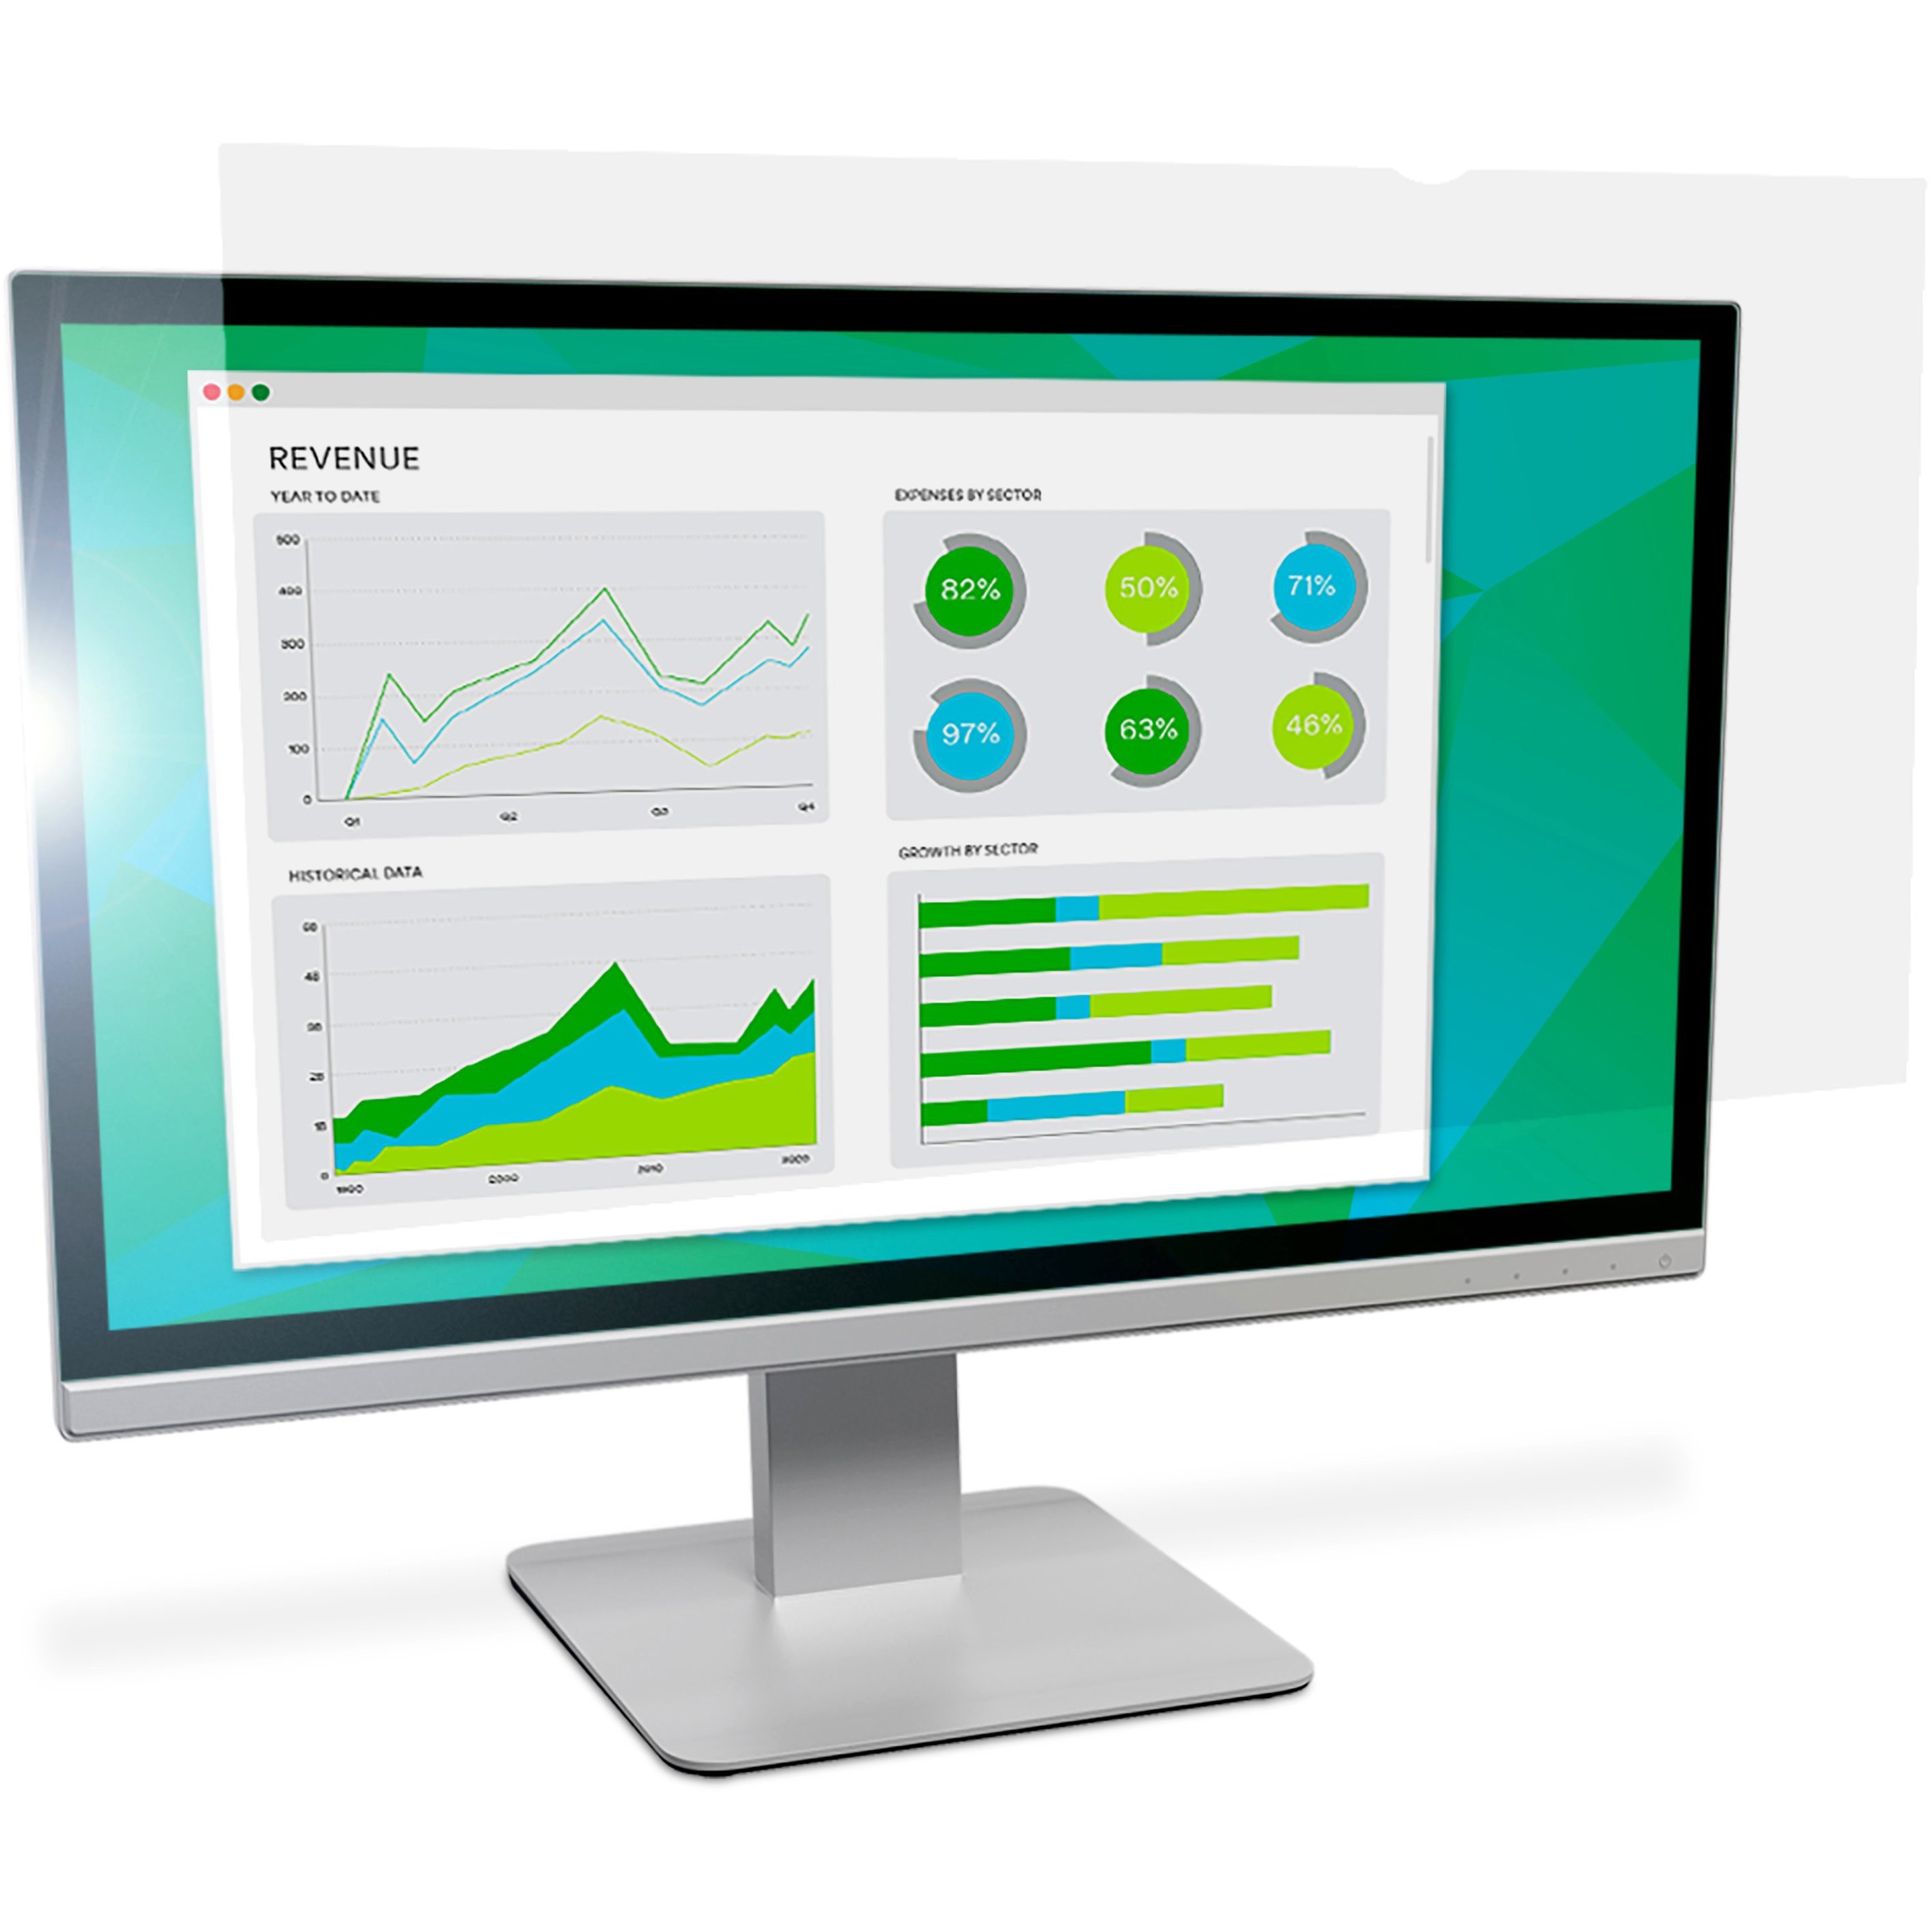 """3M, MMMAG190W1B, Anti-Glare Filter for 19"""" Widescreen Monitor (16:10) (AG190W1B), Clear,Matte"""